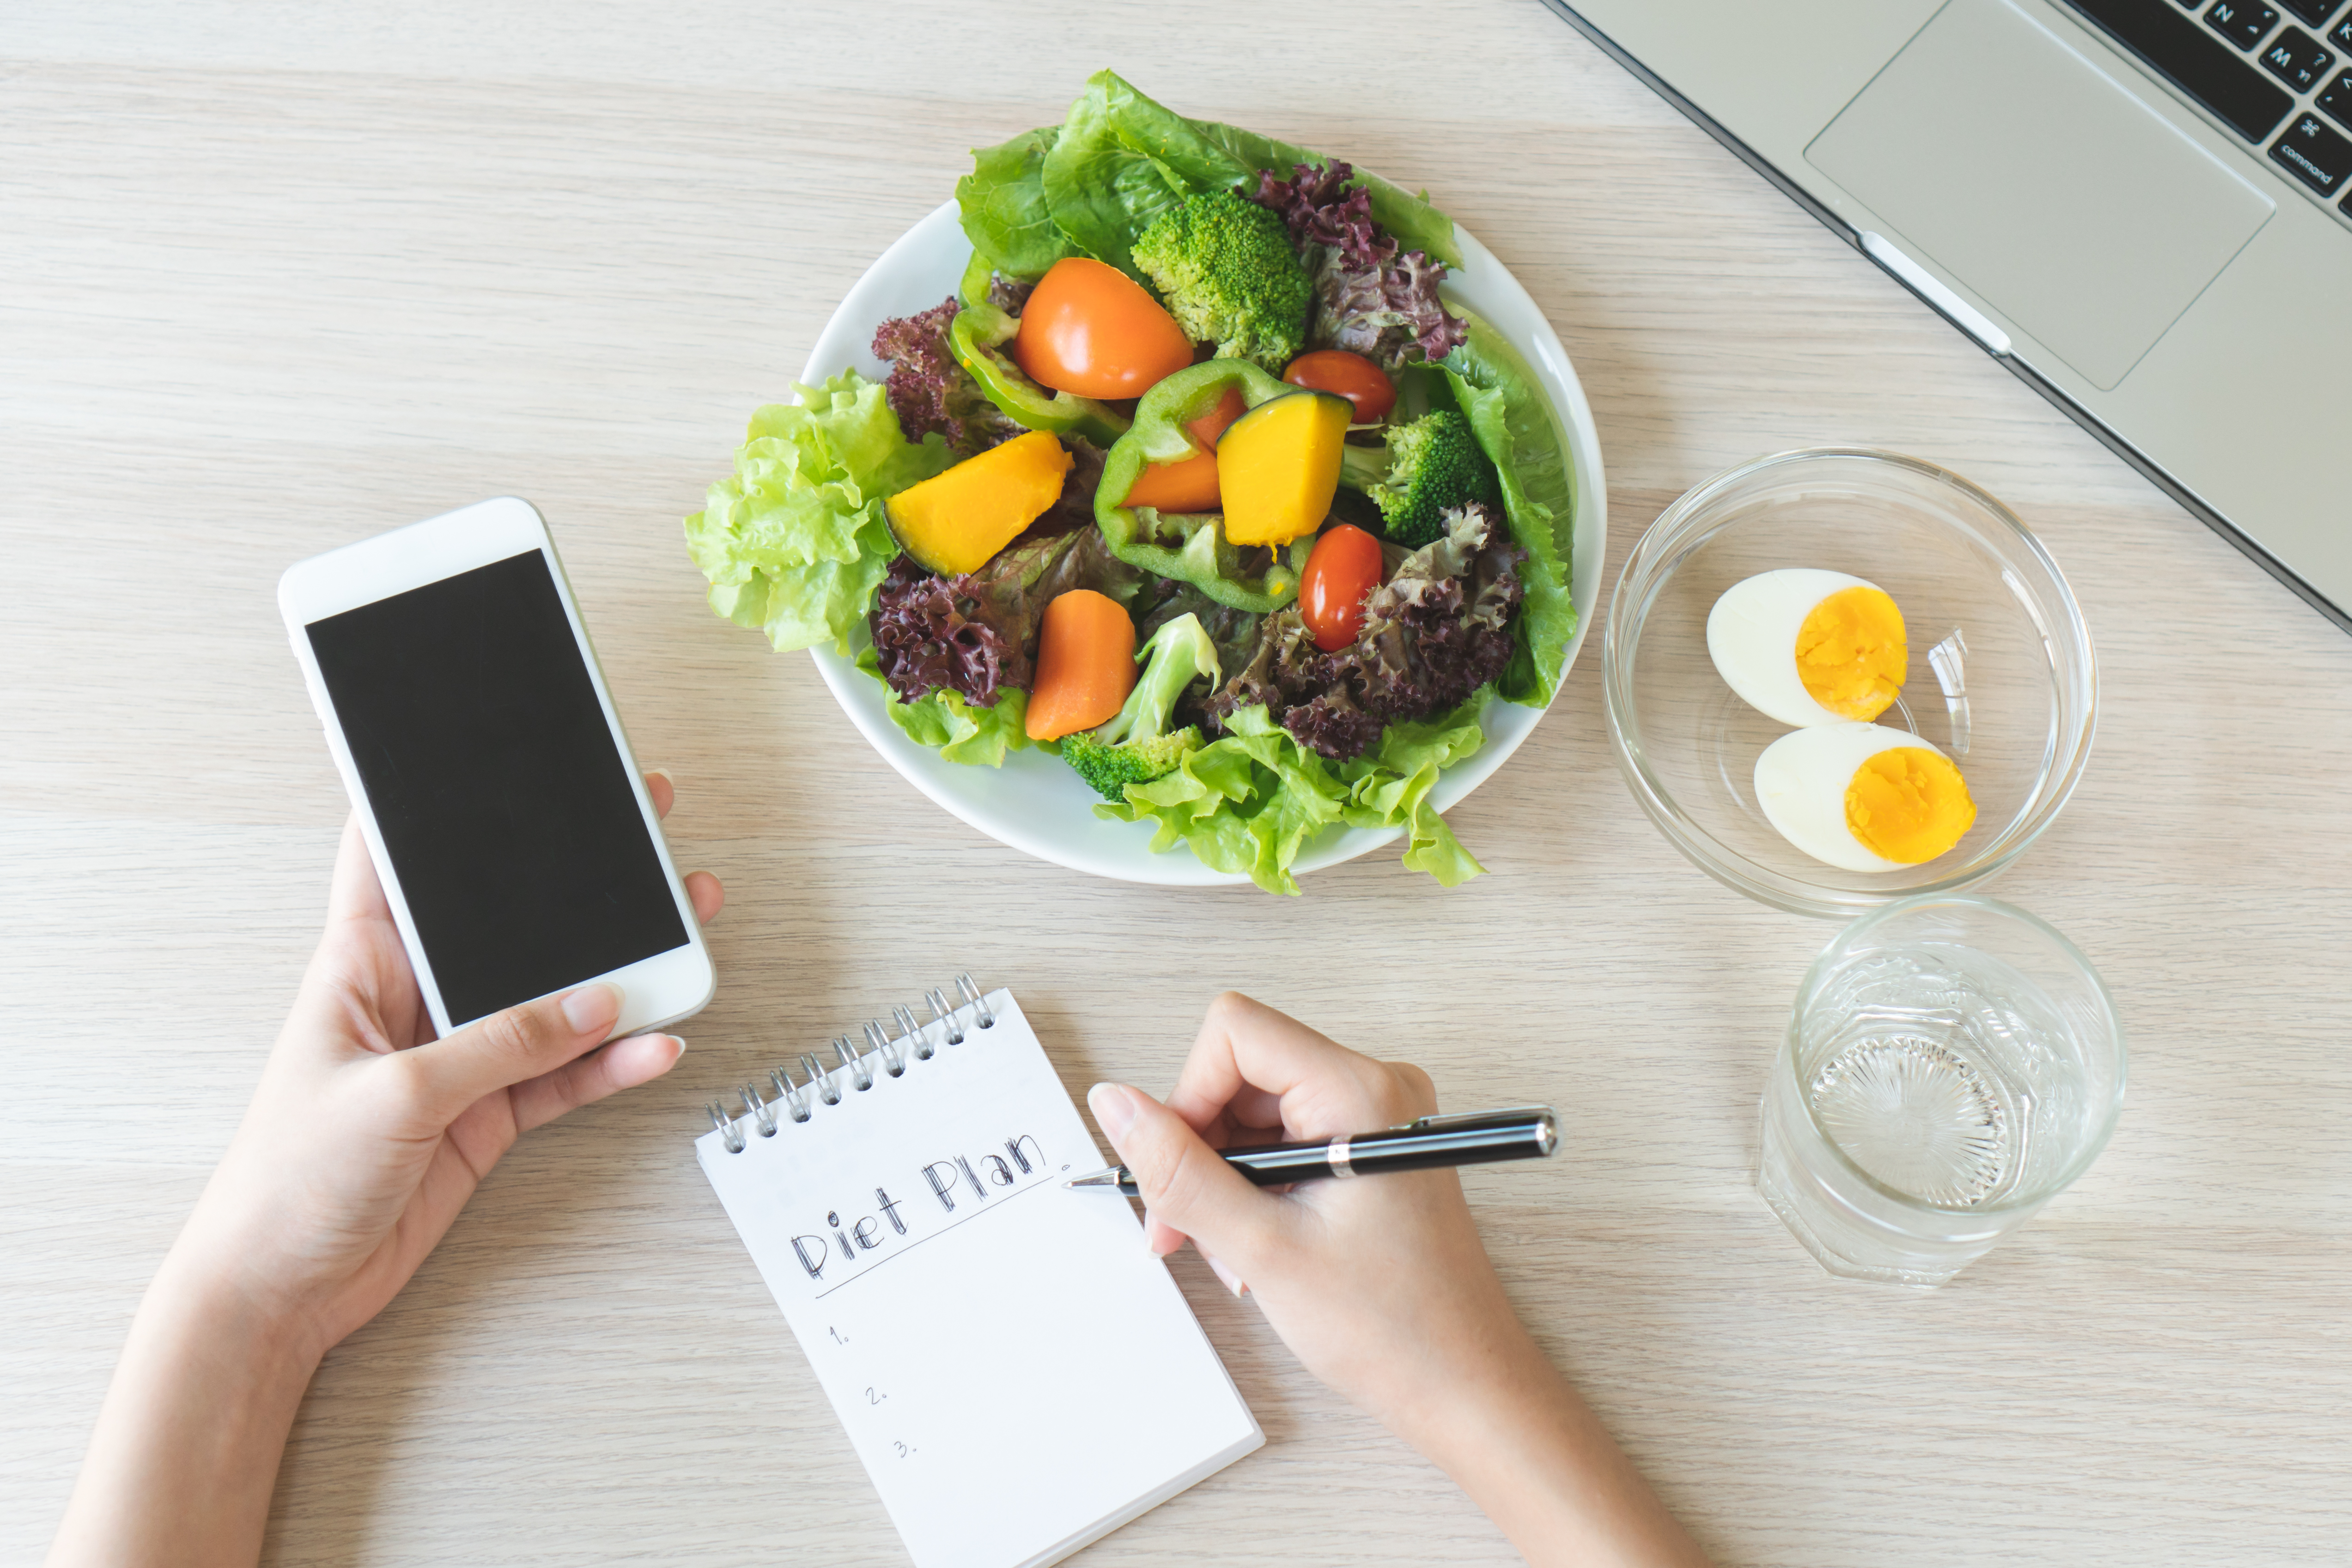 Diet Planning After Bariatric Surgery